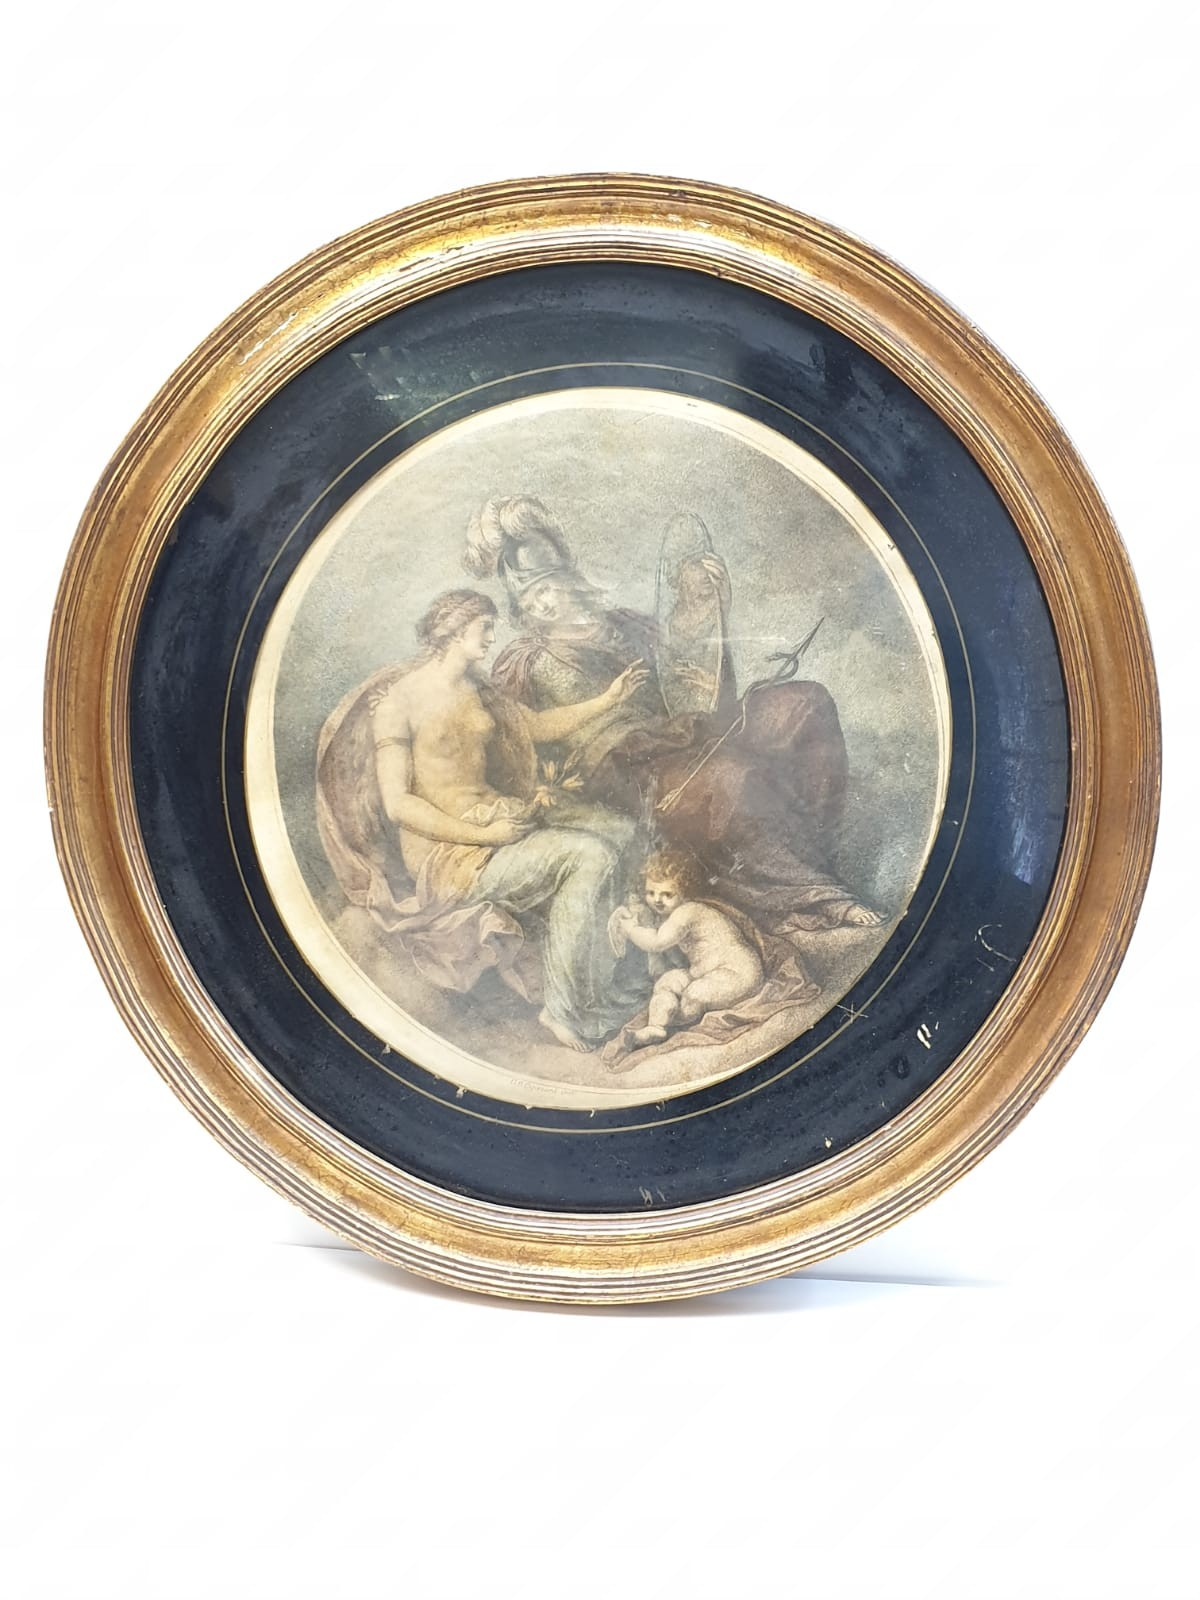 A very early Angelica Kauffman style print in circular gilt frame. 46cm in diameter.